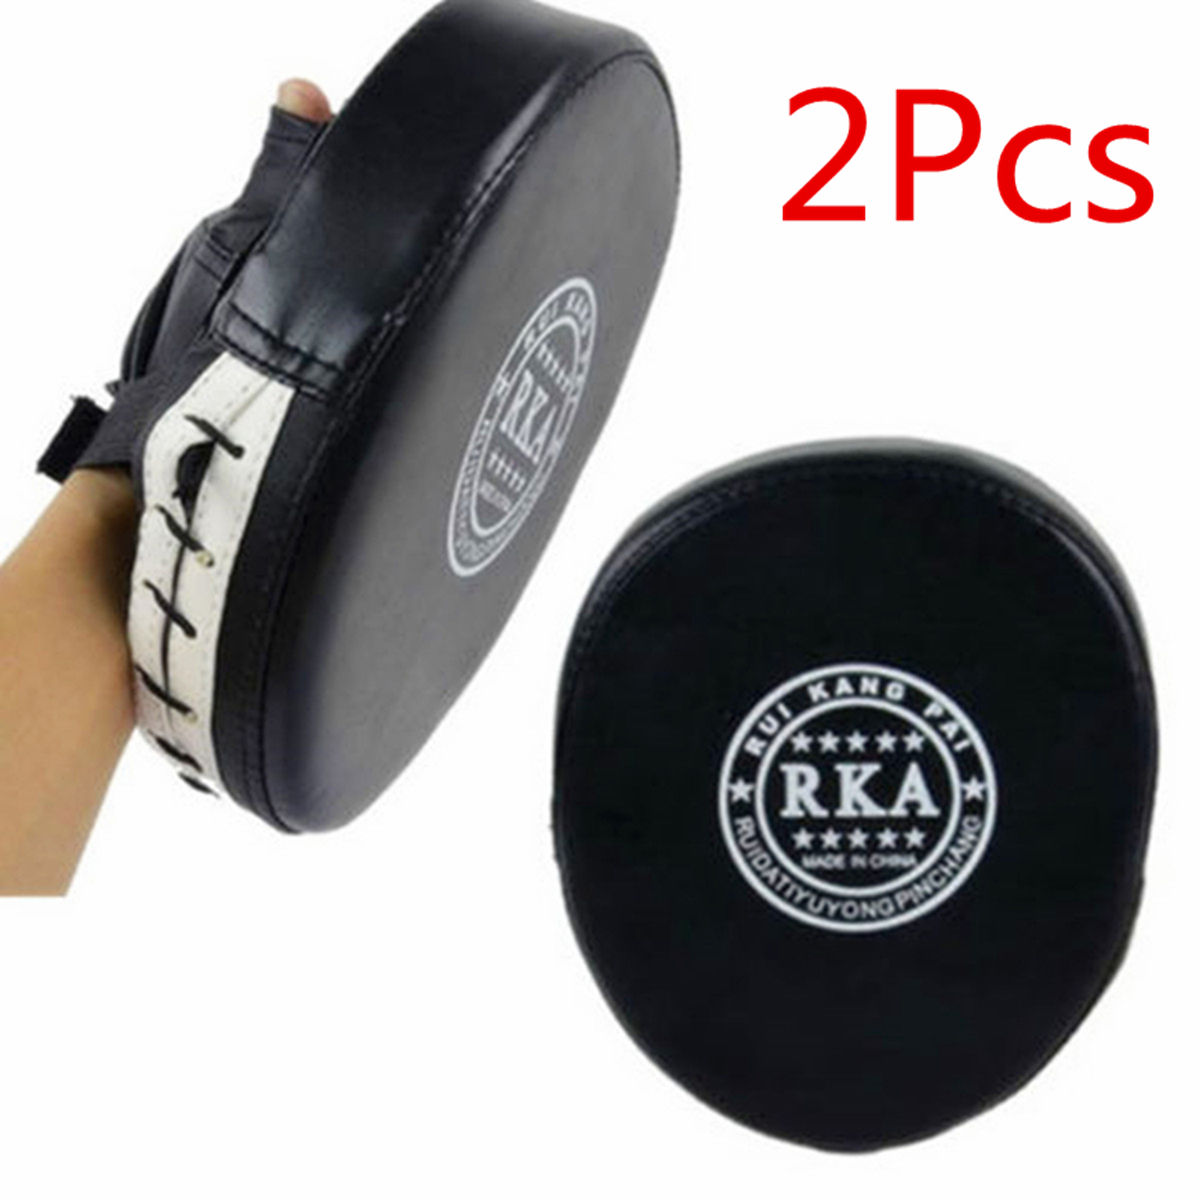 1 Pair Leather Boxing Gloves Muay Thai Kick MMA Mitt Training Target Focus Punch Pad Glove Combat Karate Muay